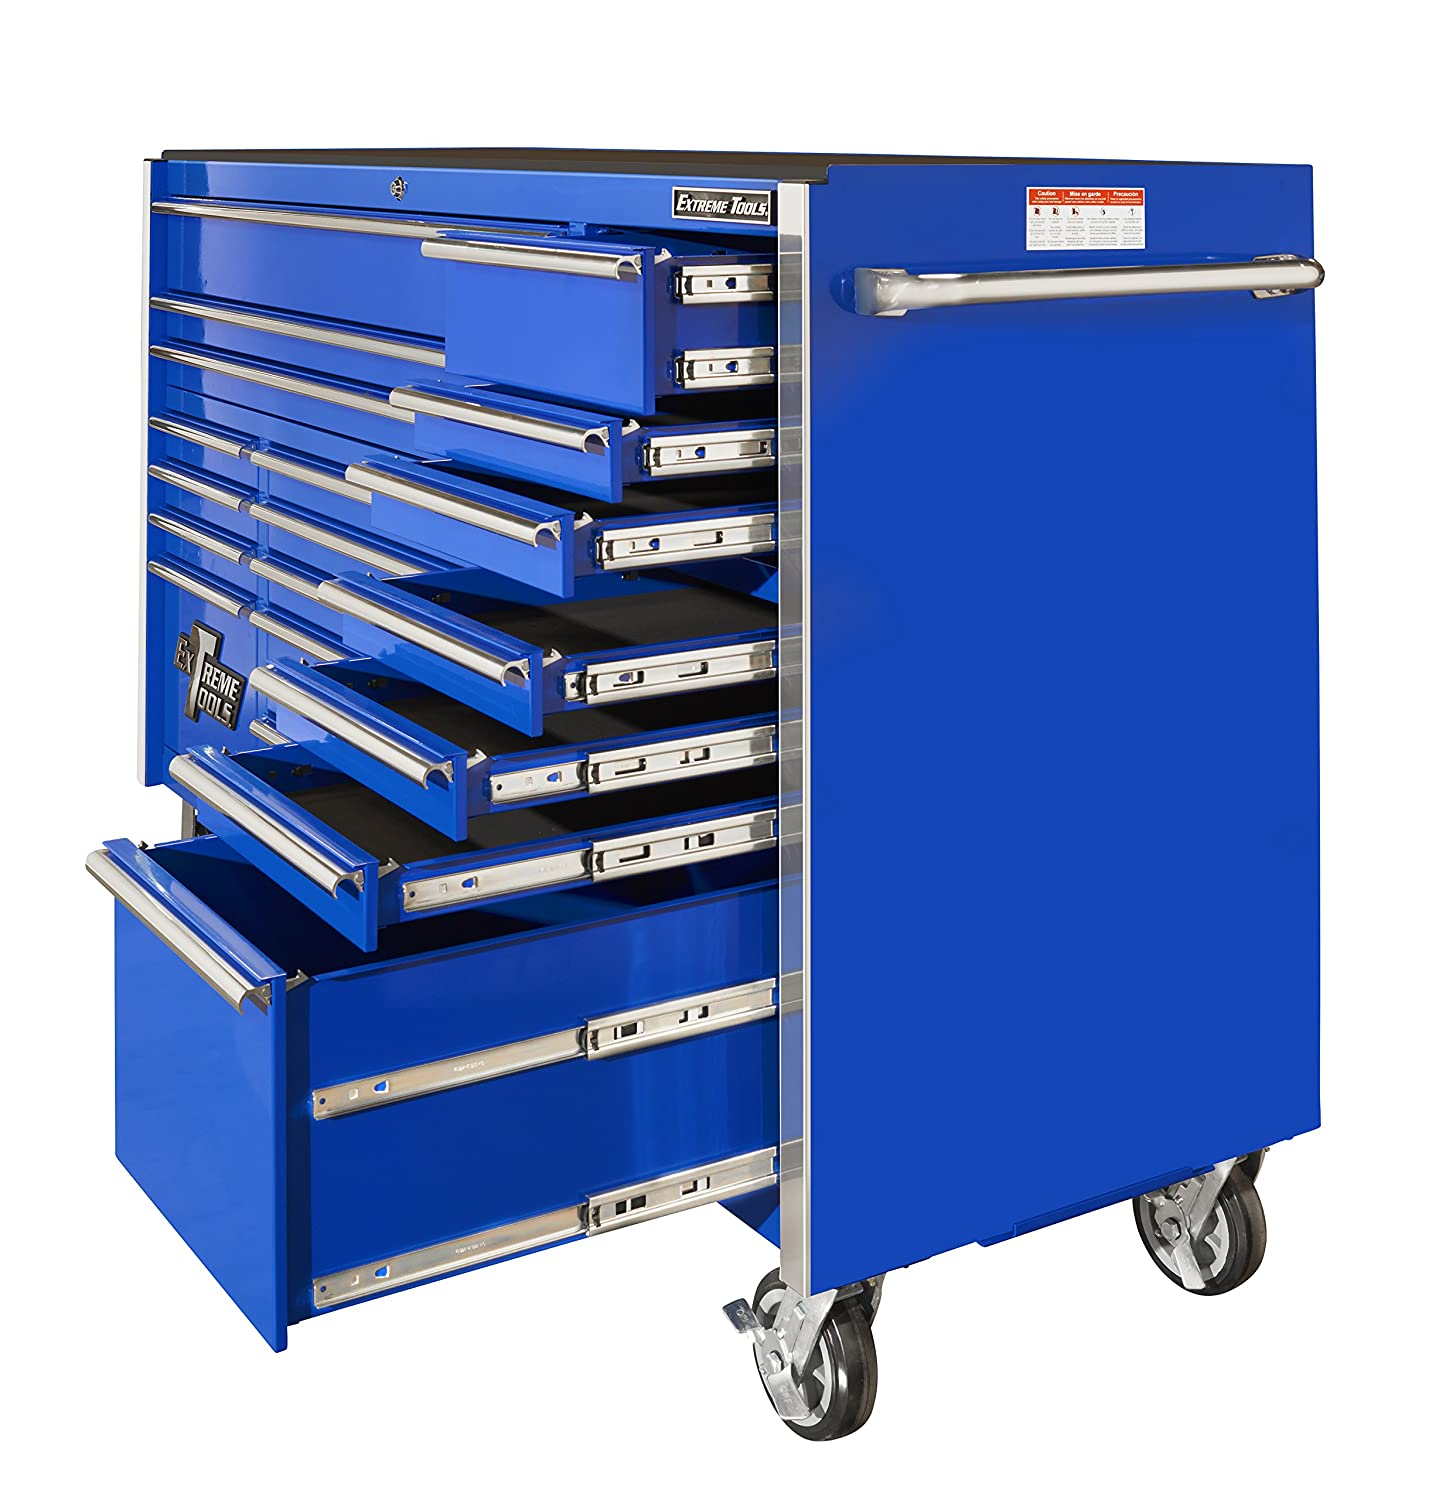 Amazon Extreme Tools RX RCBL Rx Series 19 Drawer Roller